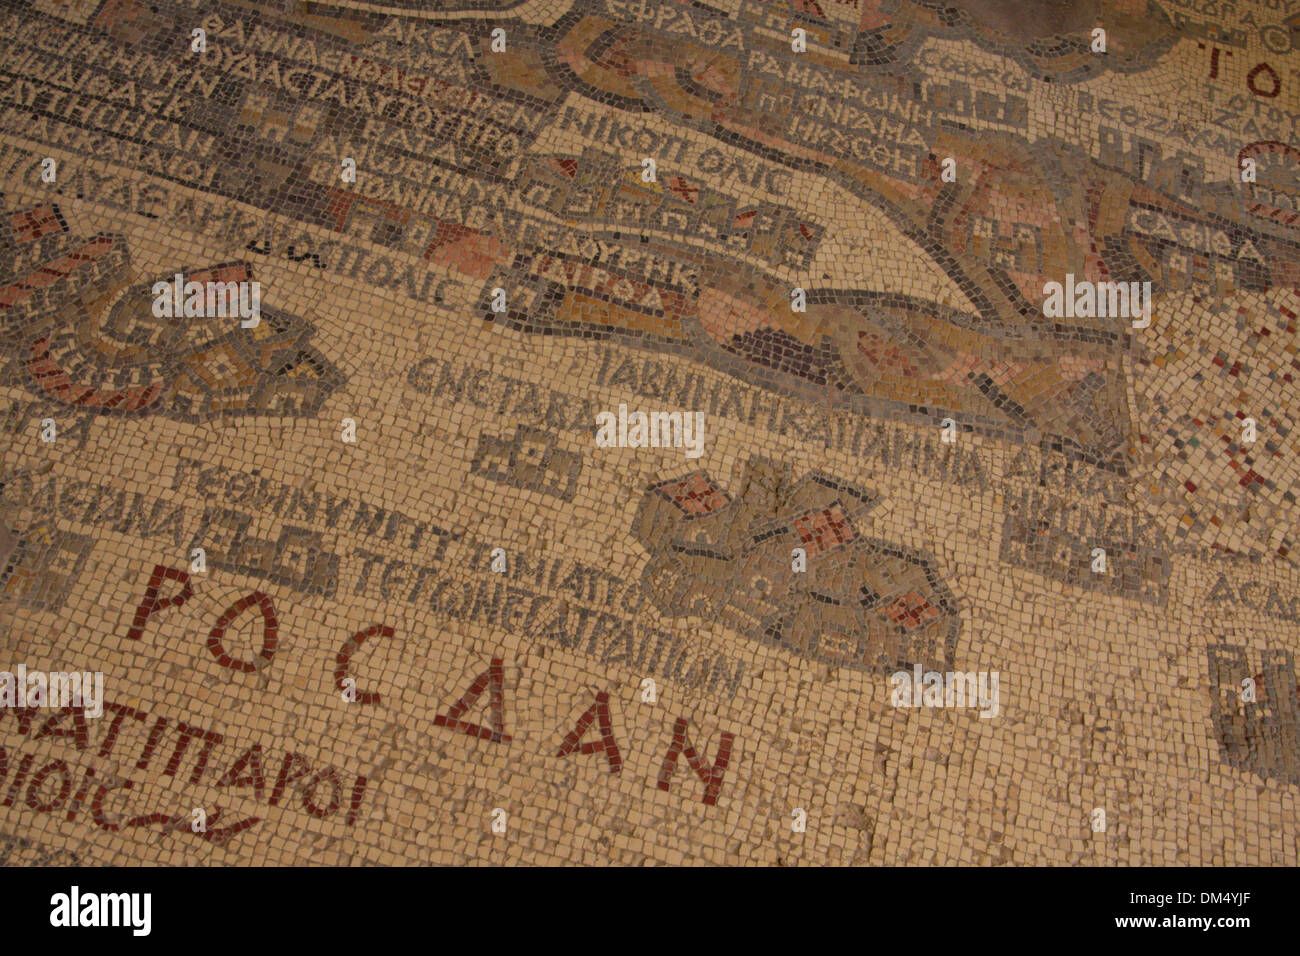 Detail of the mosaic map of the Holy Land in St George's Church, Madaba, Jordan Stock Photo